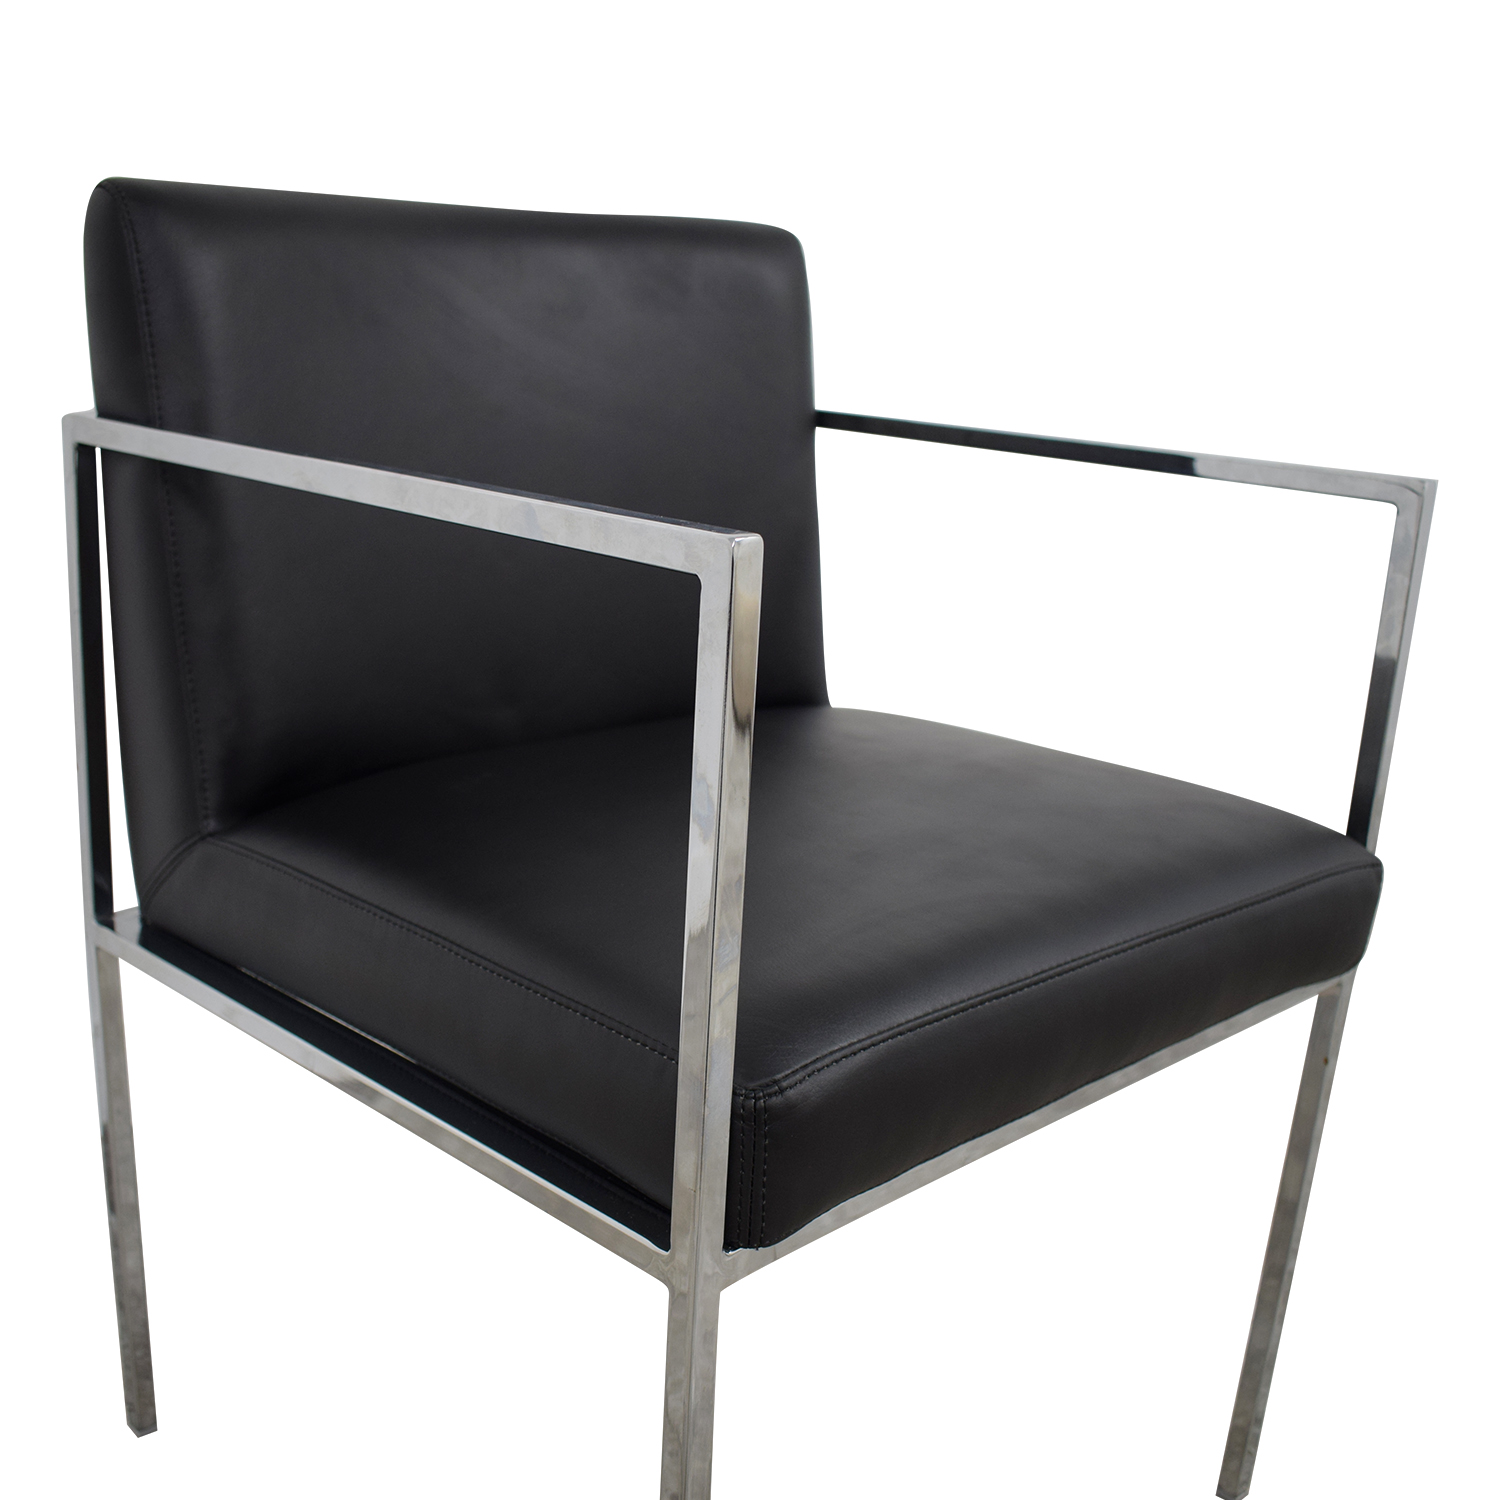 83 OFF  Black Leather Accent Chair  Chairs